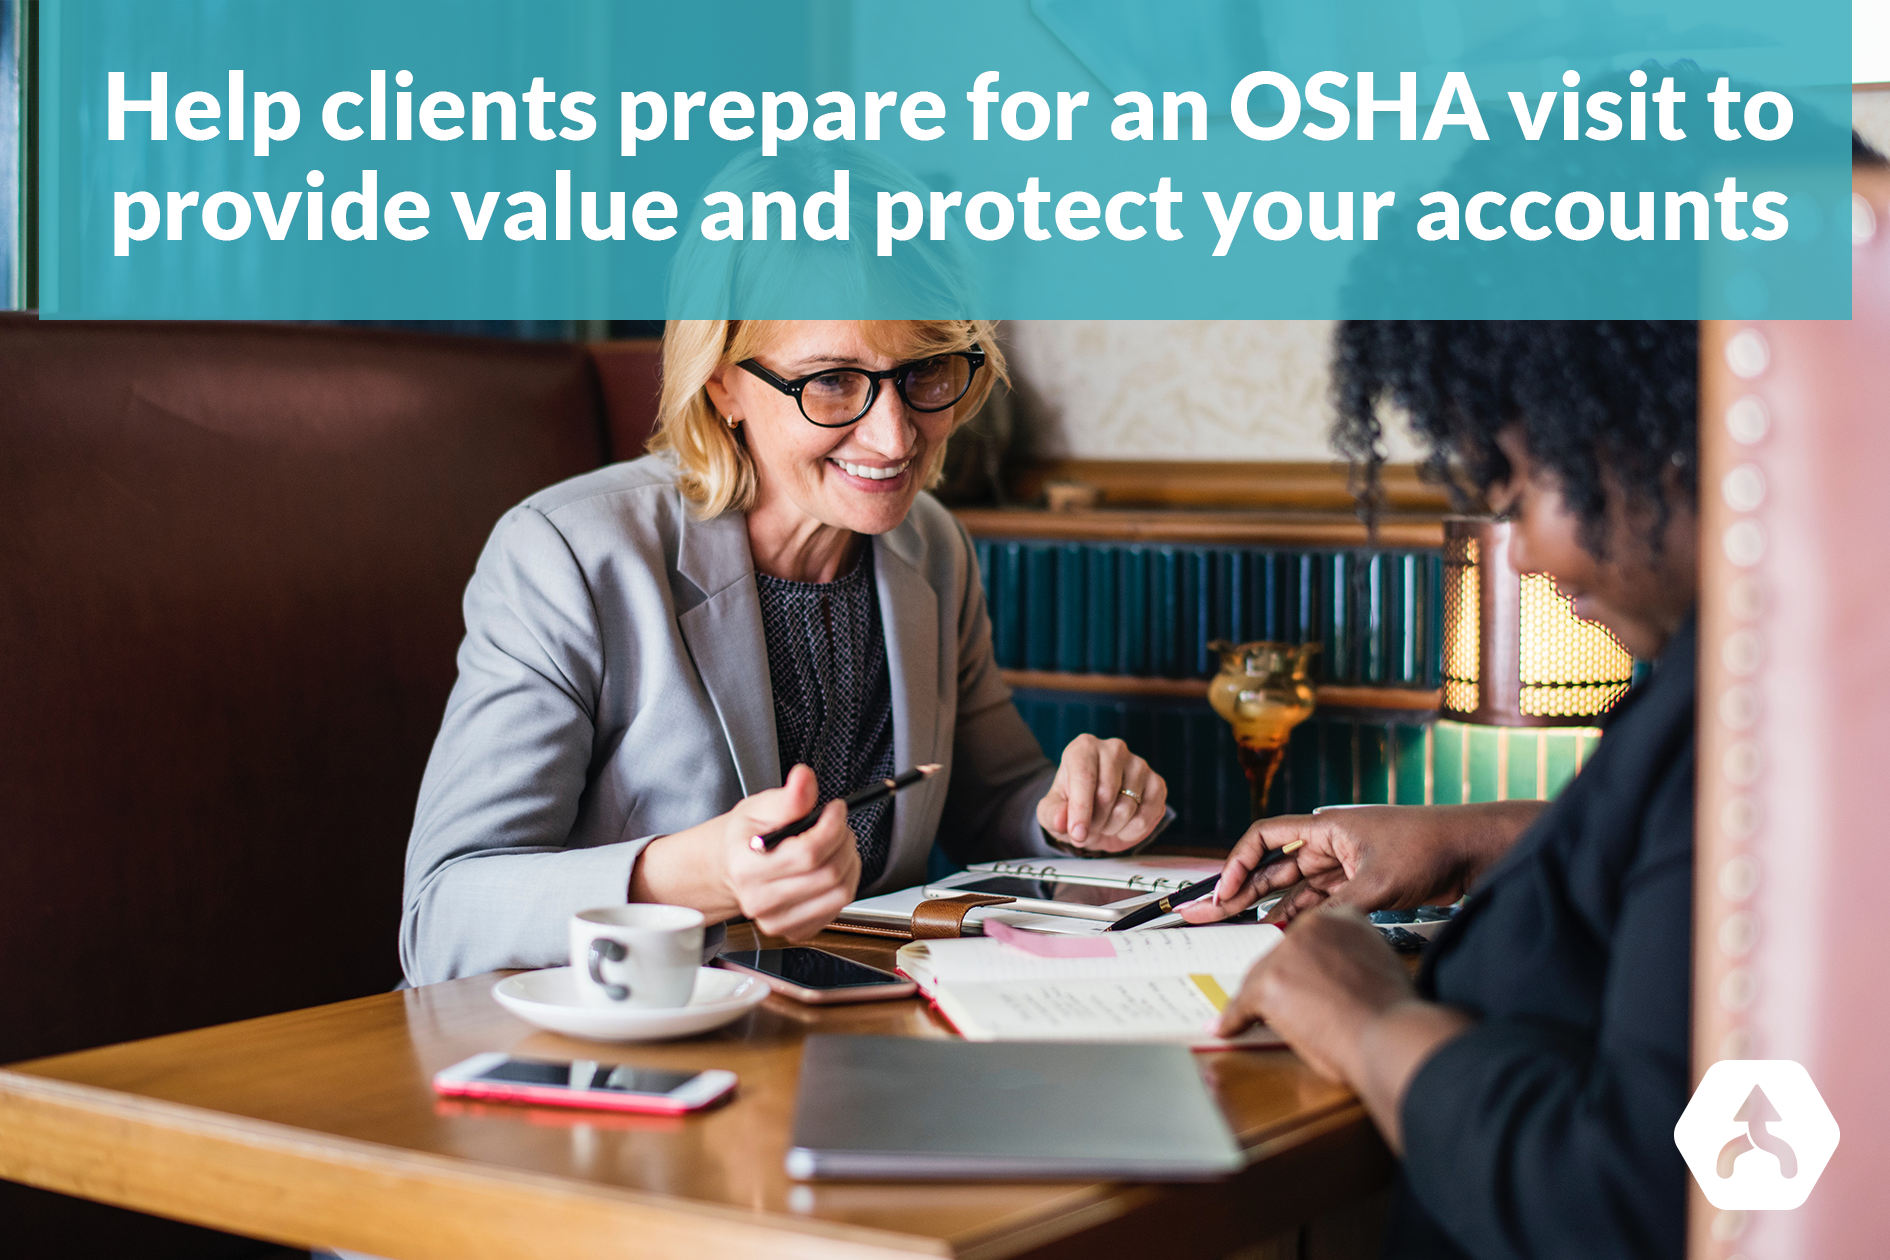 Help clients prepare for an OSHA visit to provide value and protect your accounts